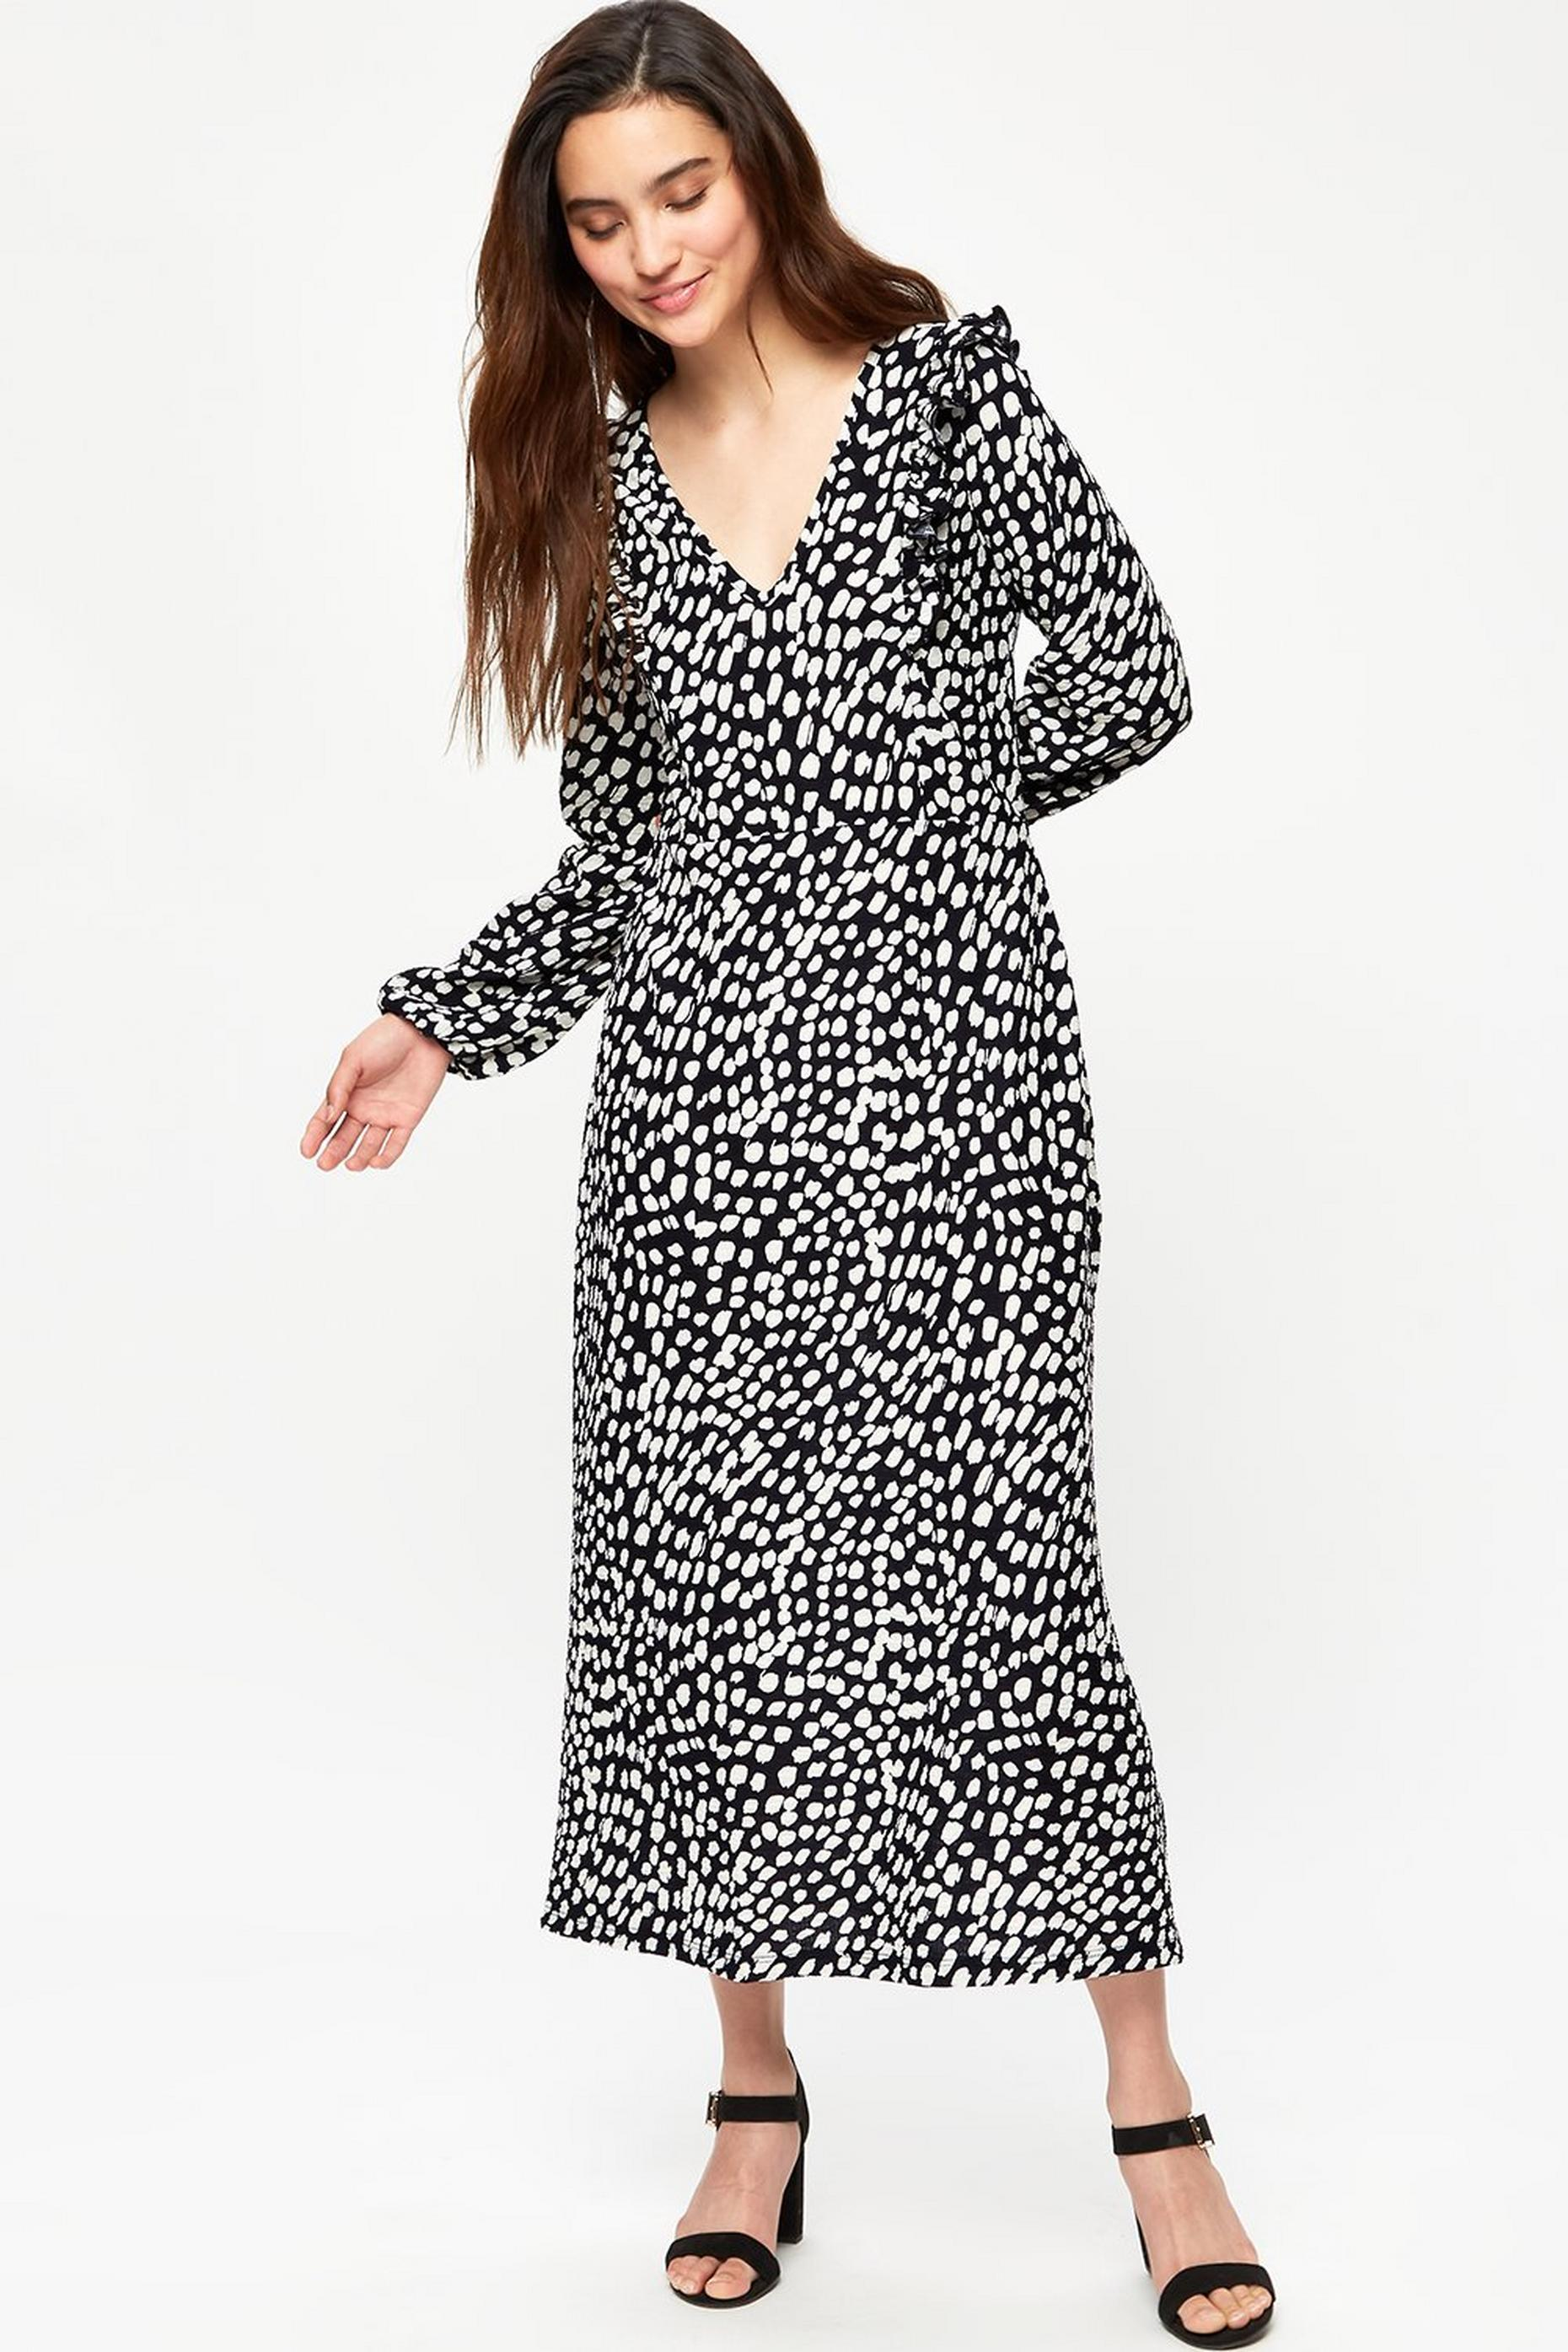 Petite Black And White Spot Midi Dress